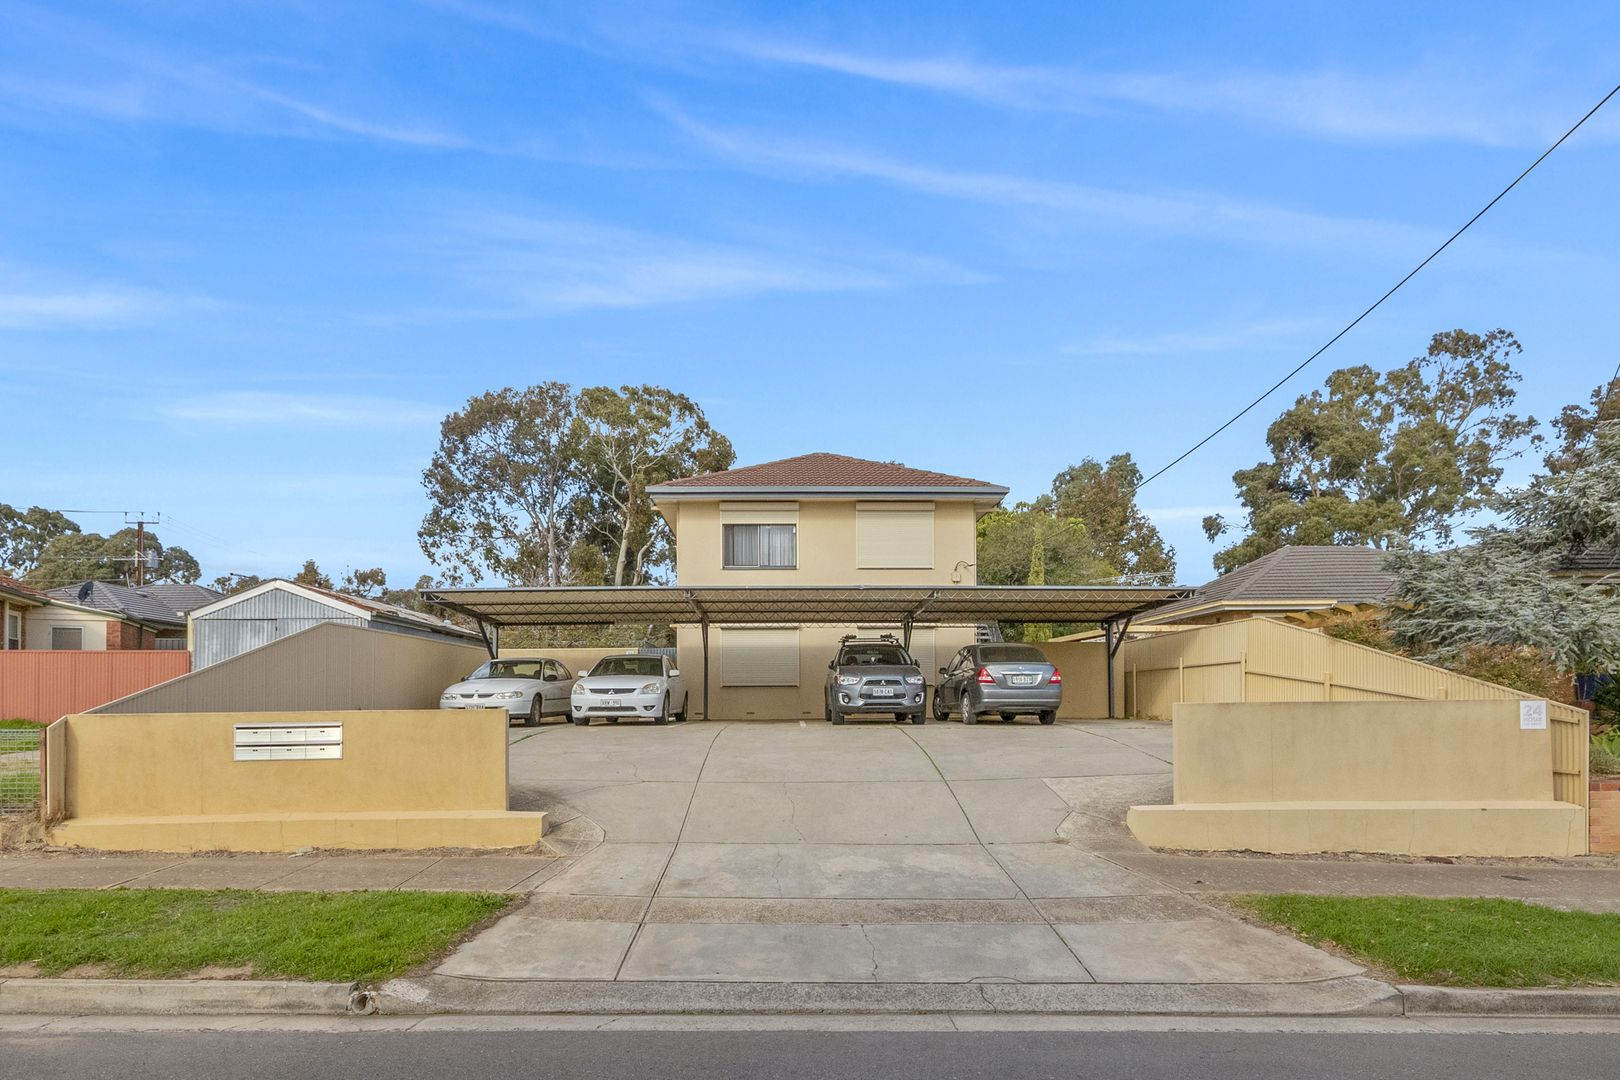 1/43 Fairview Terrace, Clearview SA 5085, Image 0